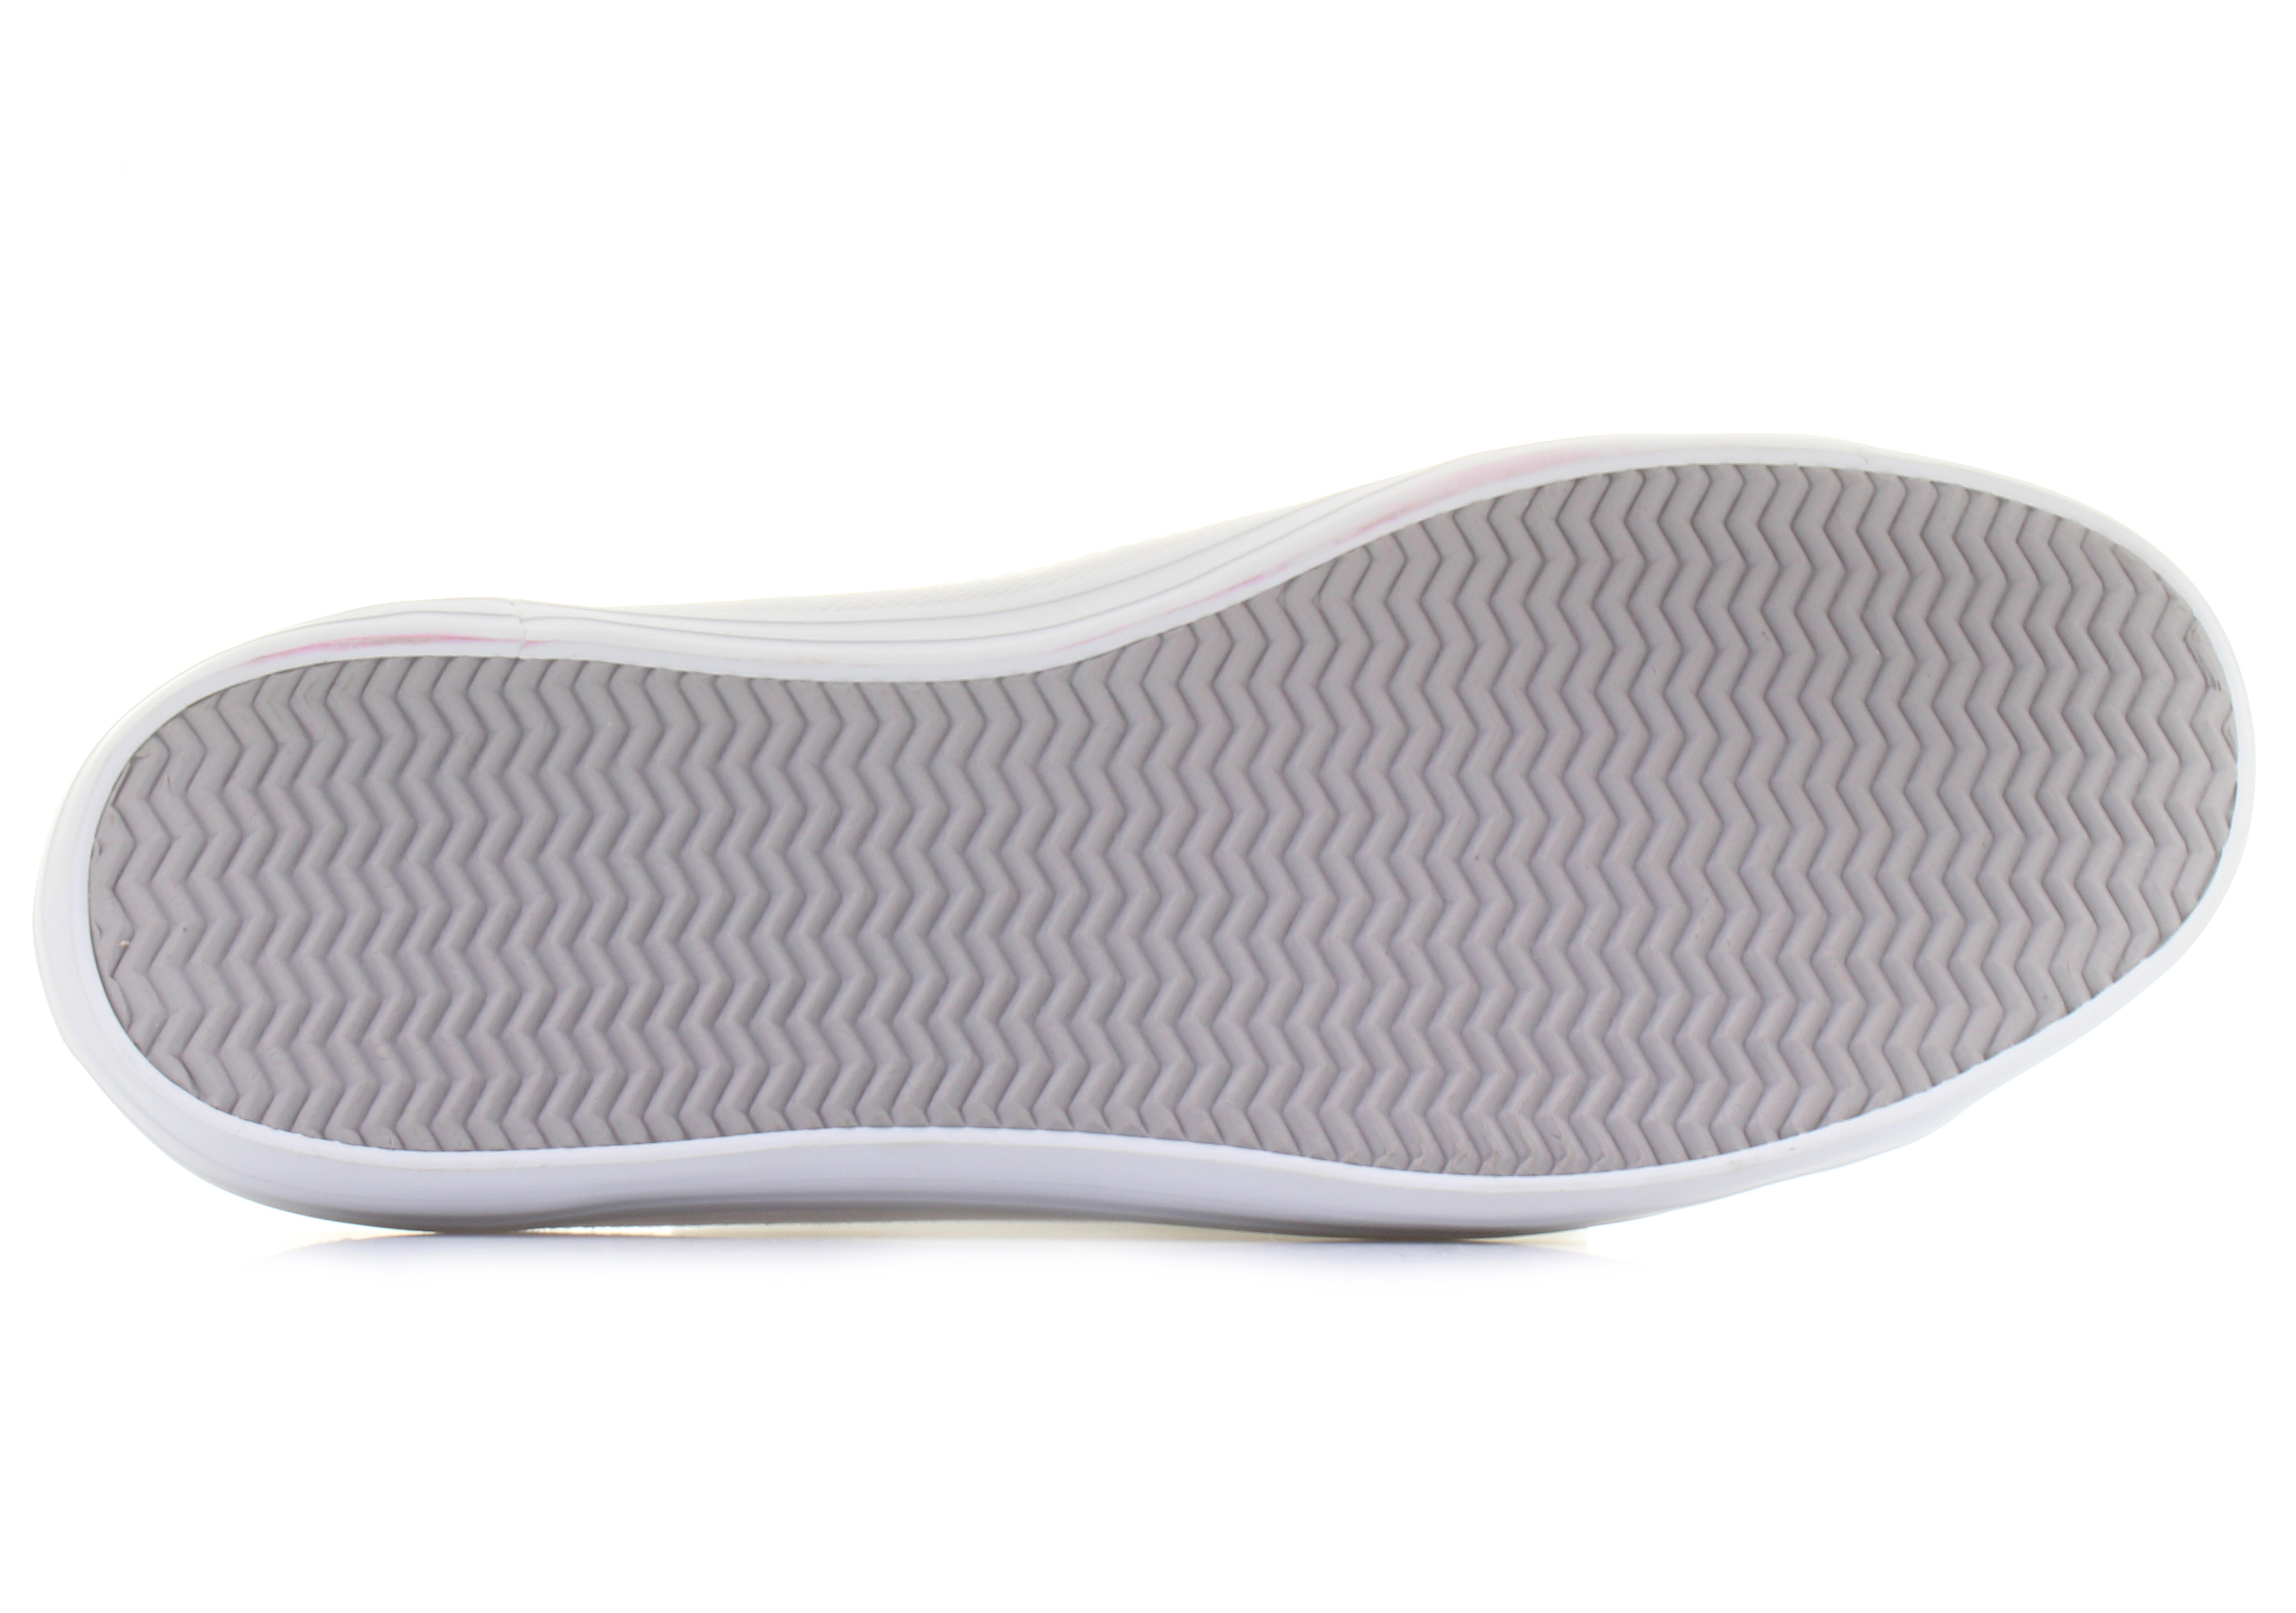 Lacoste Balerina - Ziane Chunky - 141spw0105-21g - Office Shoes ... 0abd79eb3f